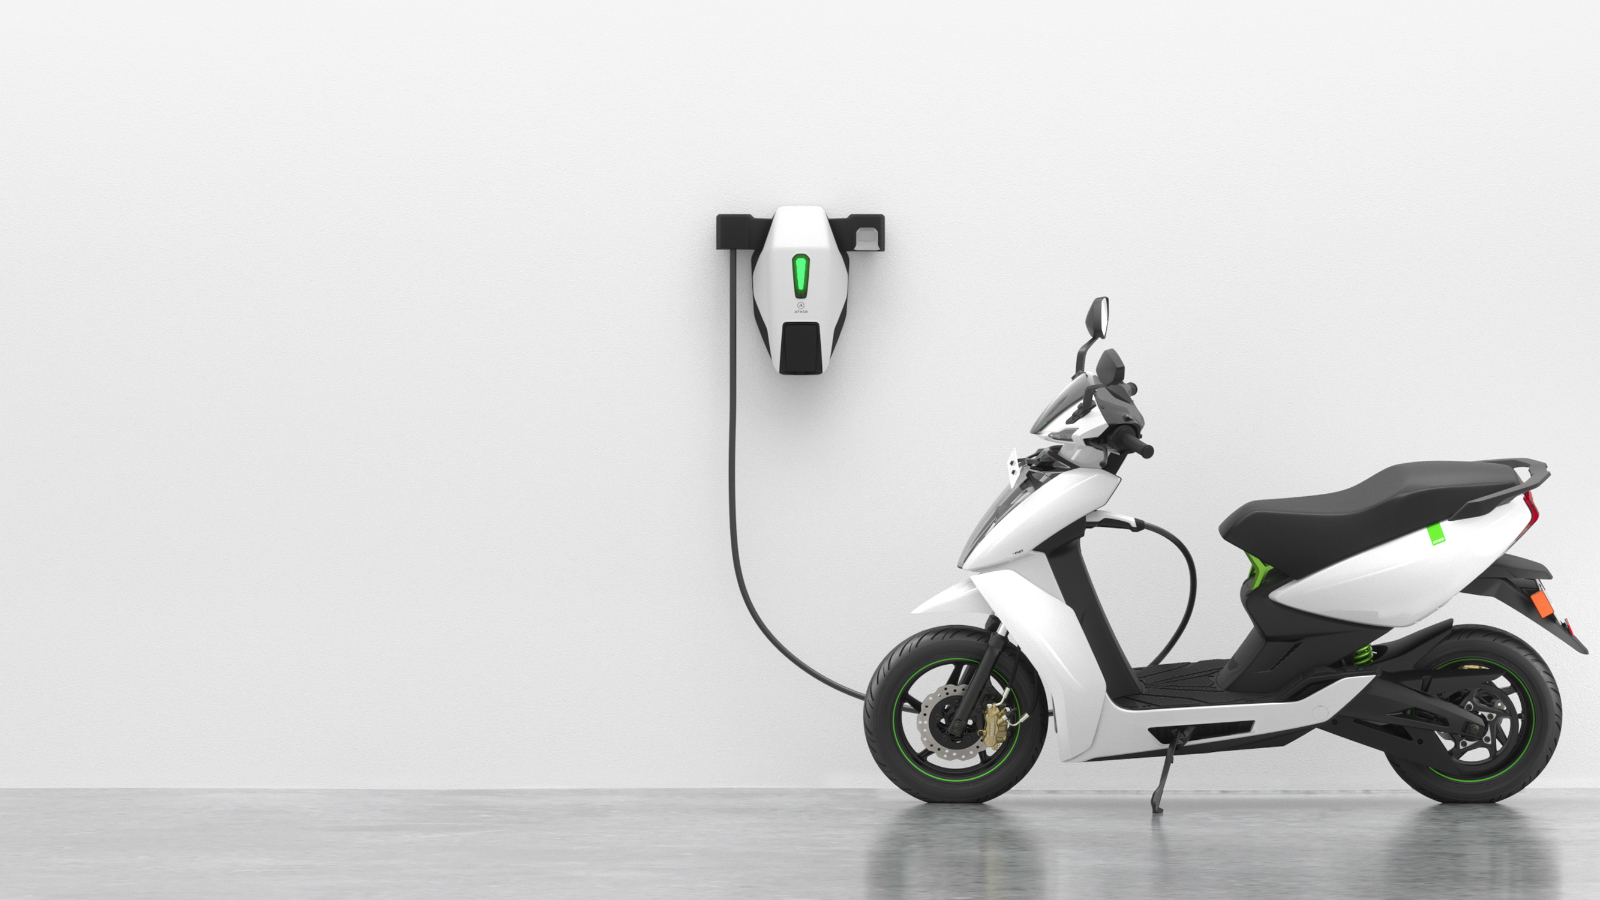 The Ather Energy 340 electric scooter launch is a moment of